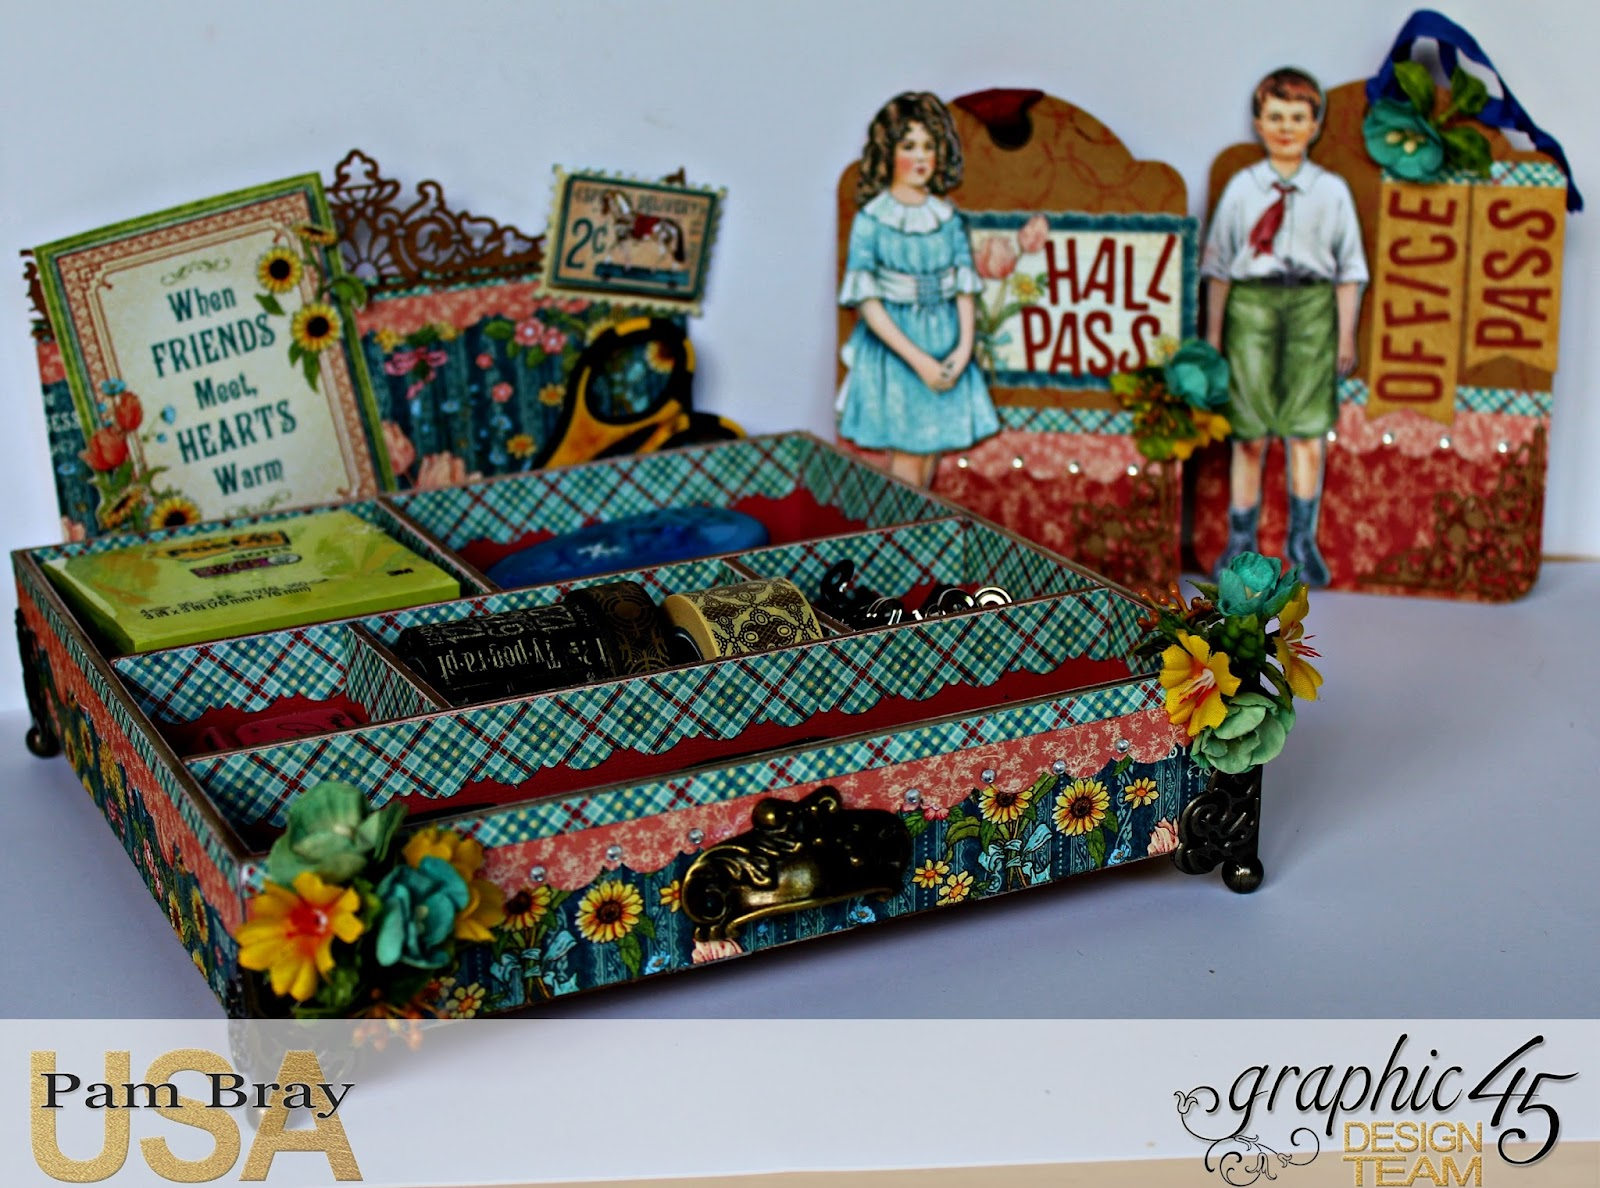 2017 G45 Brand Ambassadors- 2017 Pam Bray  - June 2017 - Penny's Paper Dolls Desk Organizer  with Tutorial Photo 2_7262.jpg